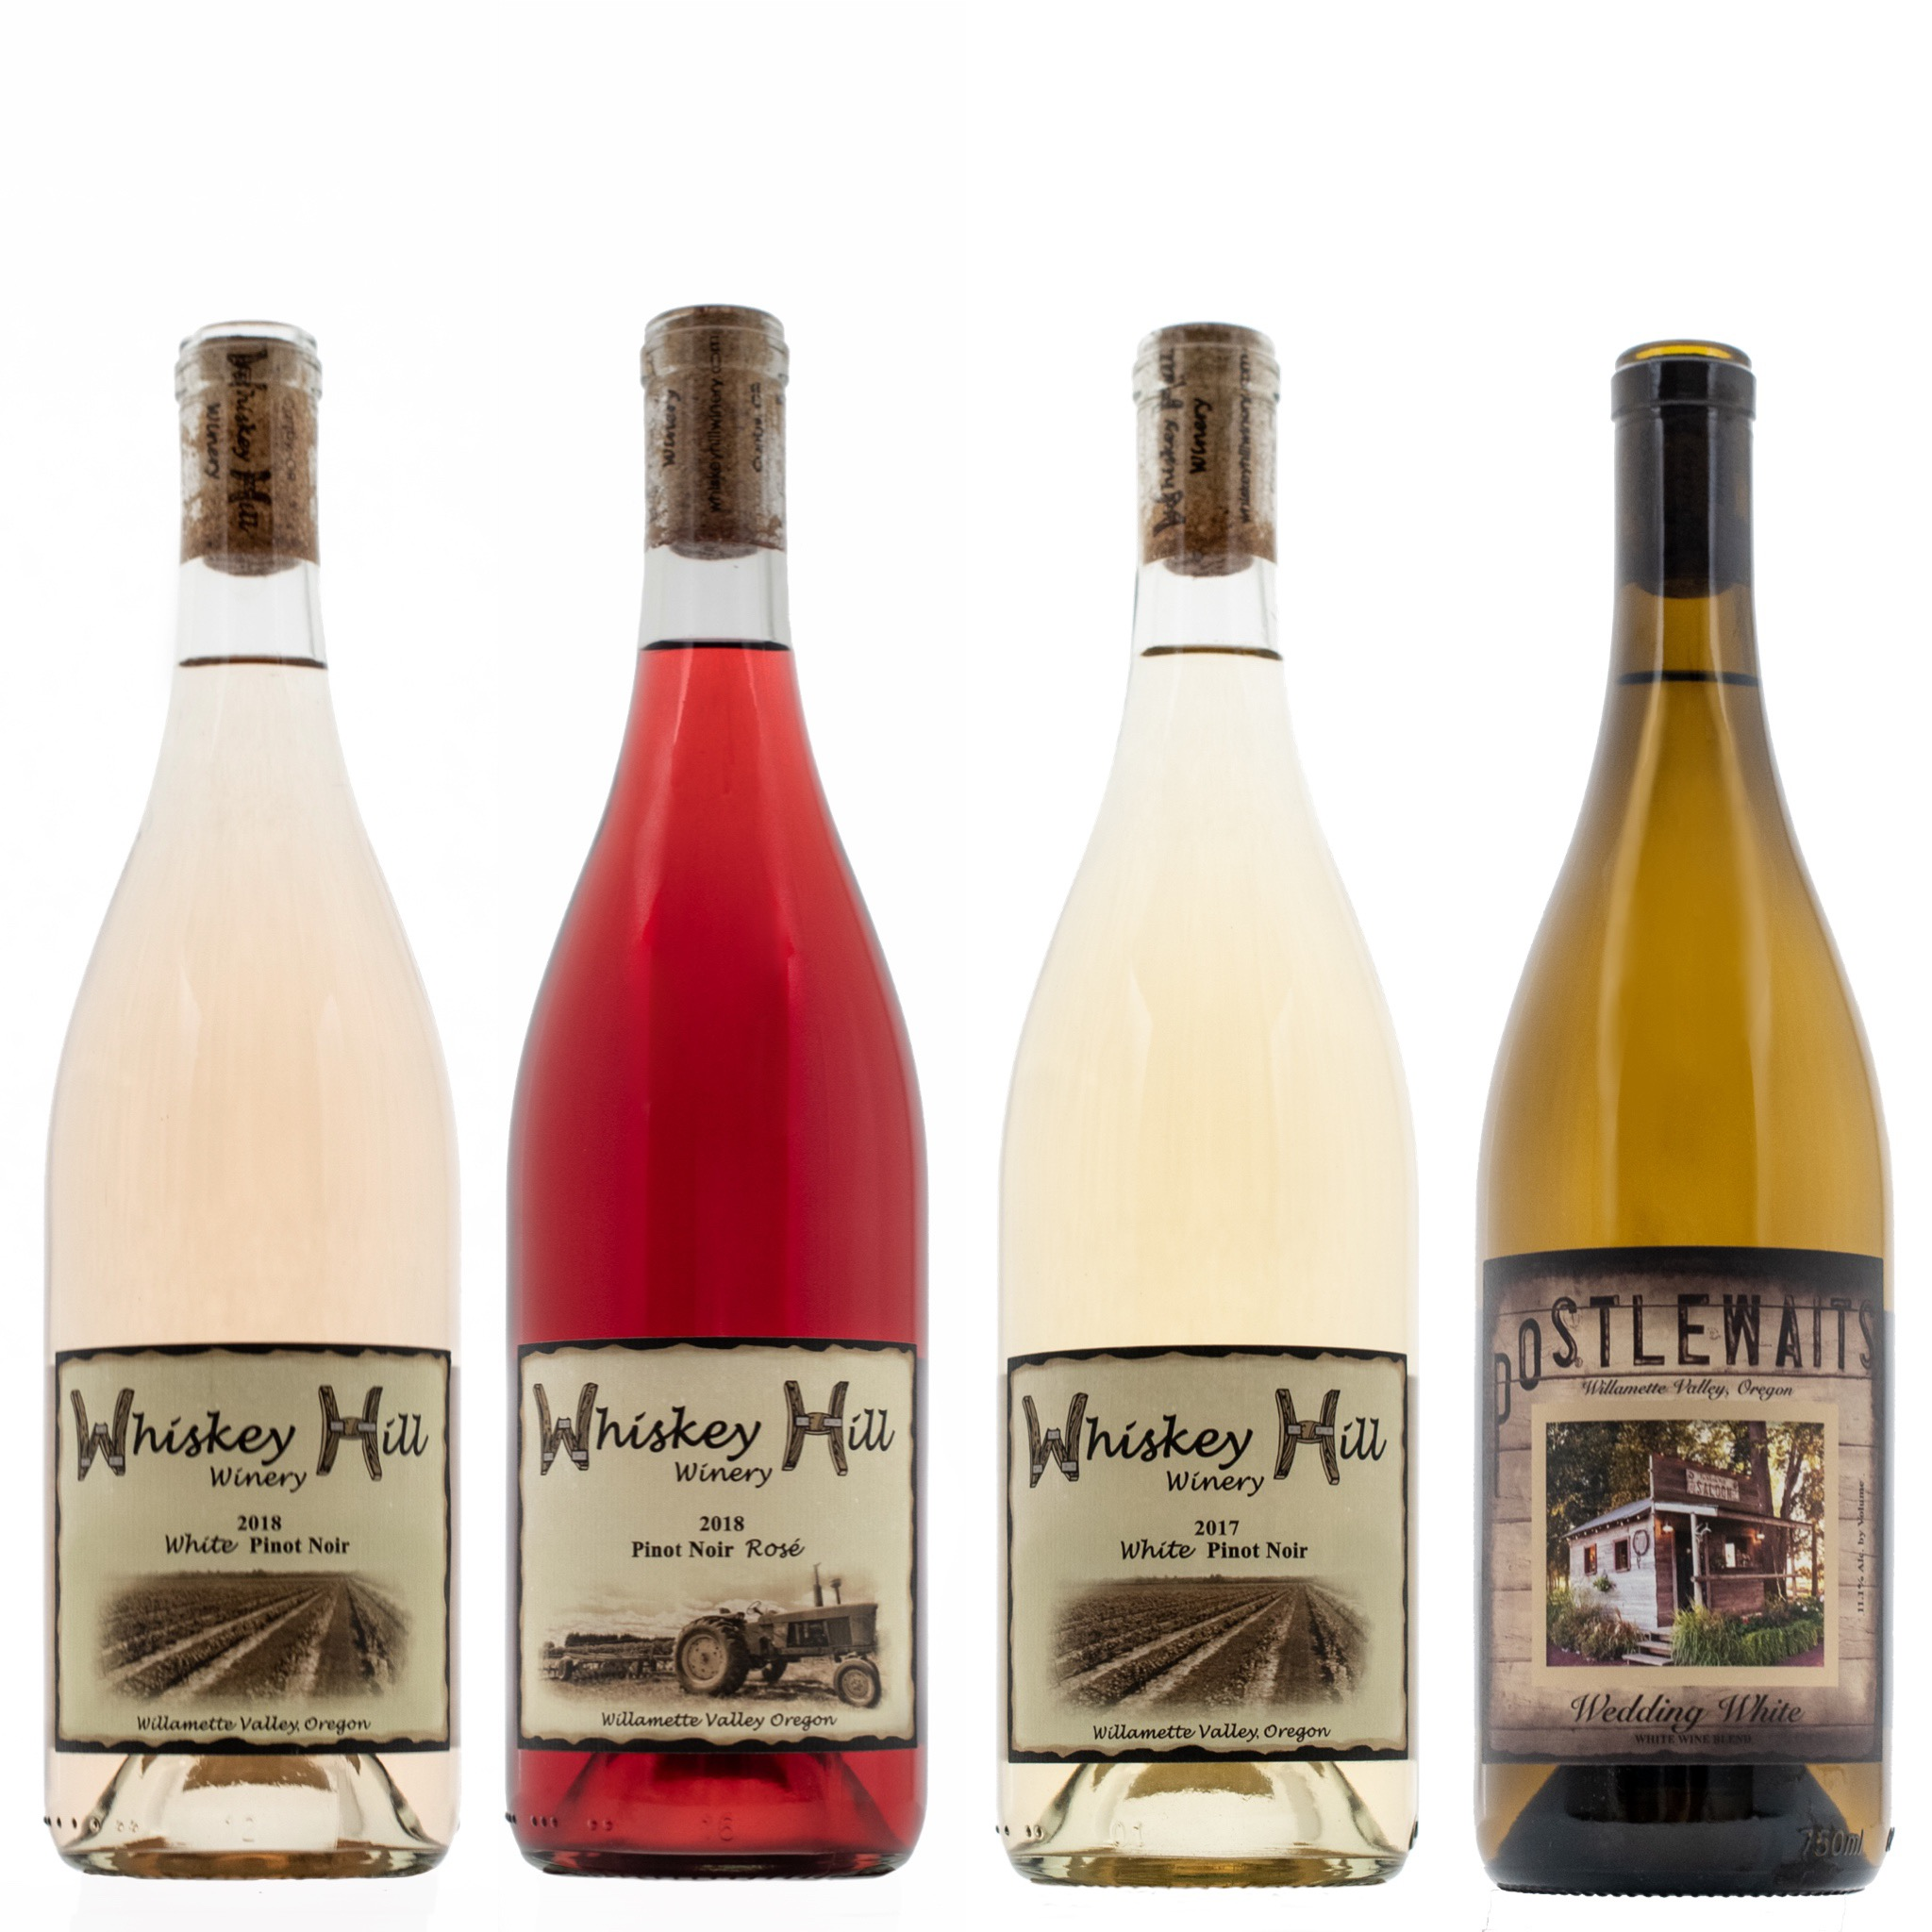 Shop our wine - FREE Shipping on orders of 3 or more bottles!